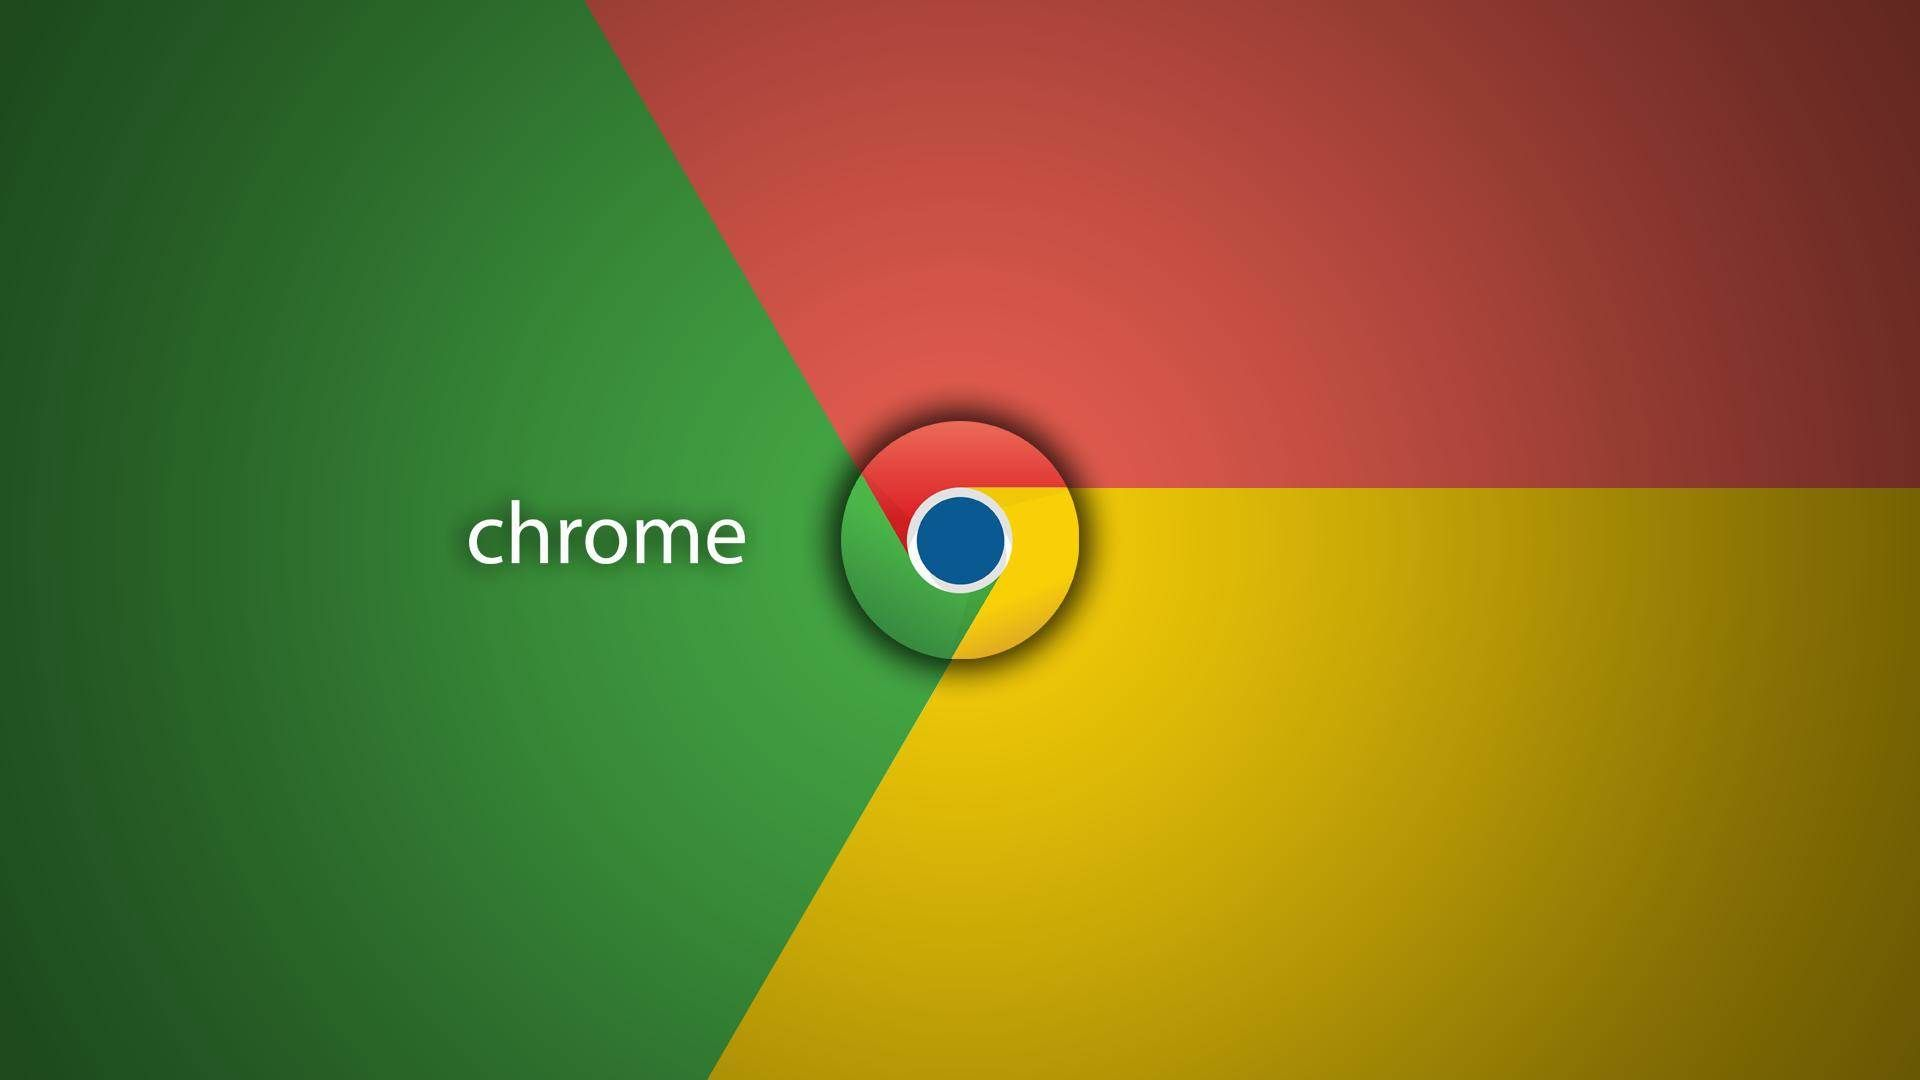 Chrome Wallpaper Themes 1024x768 Google Wallpapers